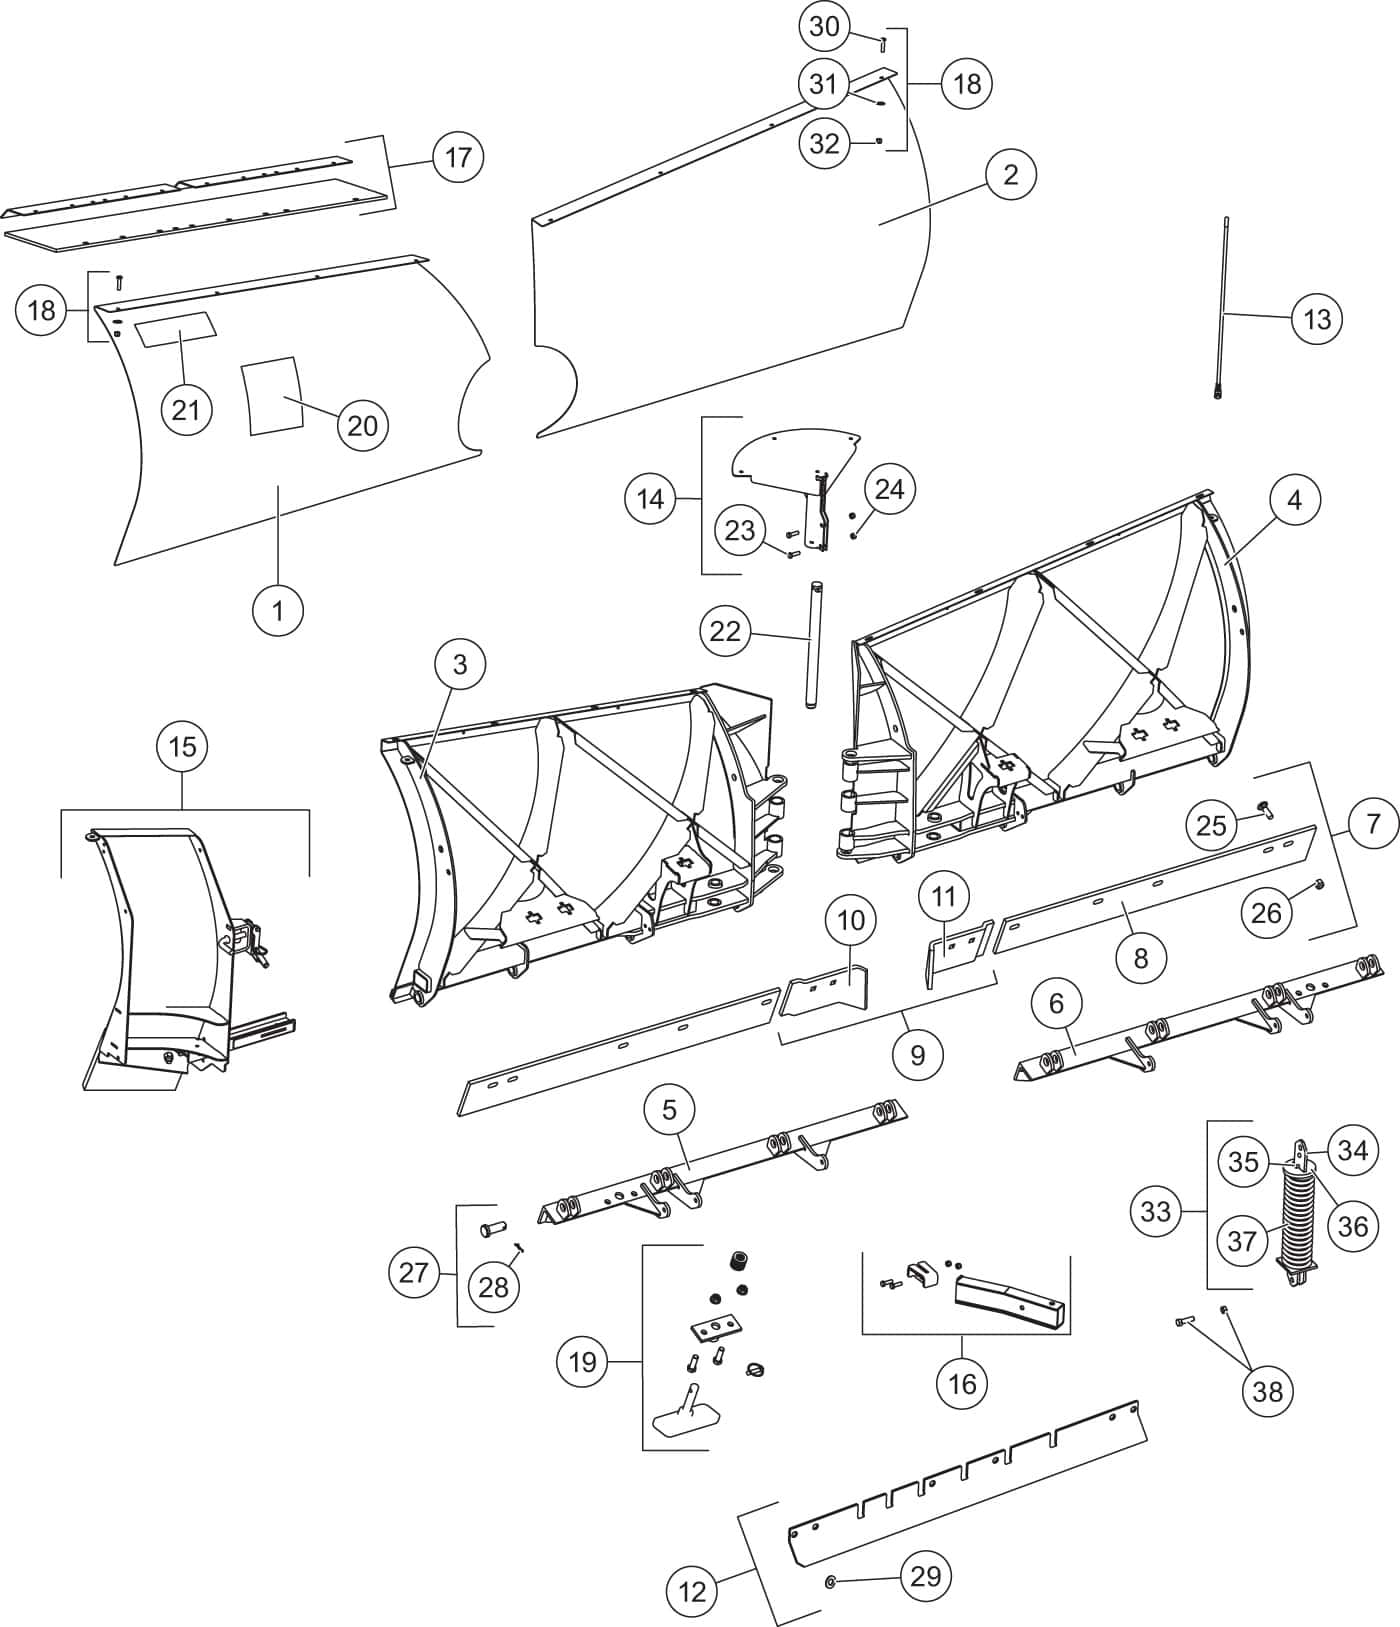 Chevy Western Plow Wiring Diagram Boss Snow Plow Wiring Diagram Curtis